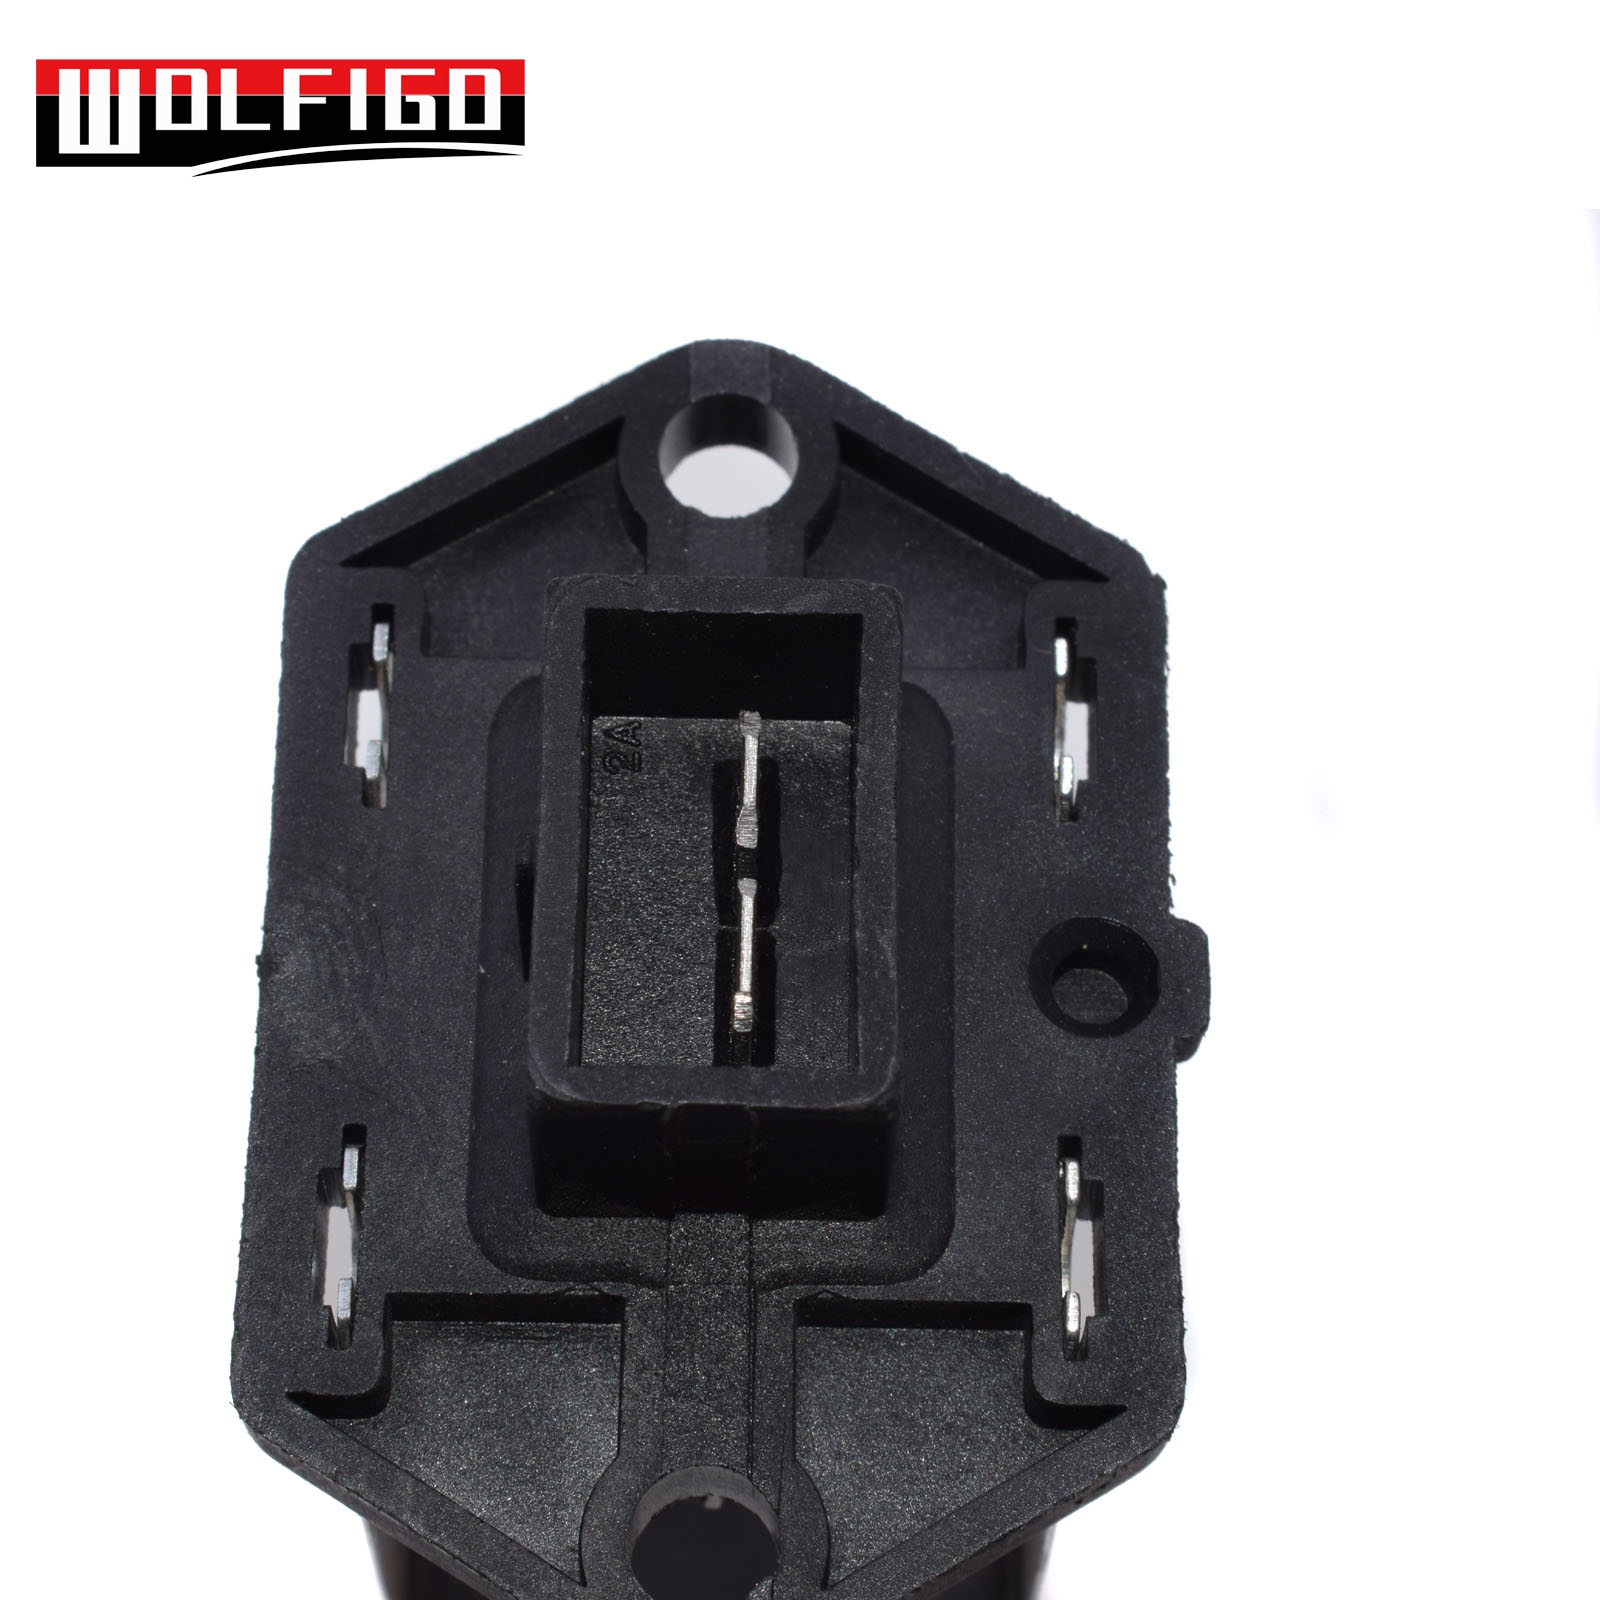 Wolfigo New Car Blower Motor Resistor Fan Control Module For Ford 2006 On F150 Mondeo Cougar 15630369 93bb9a819ac 93bb 9a819 Ac In Heater Parts From Automobiles